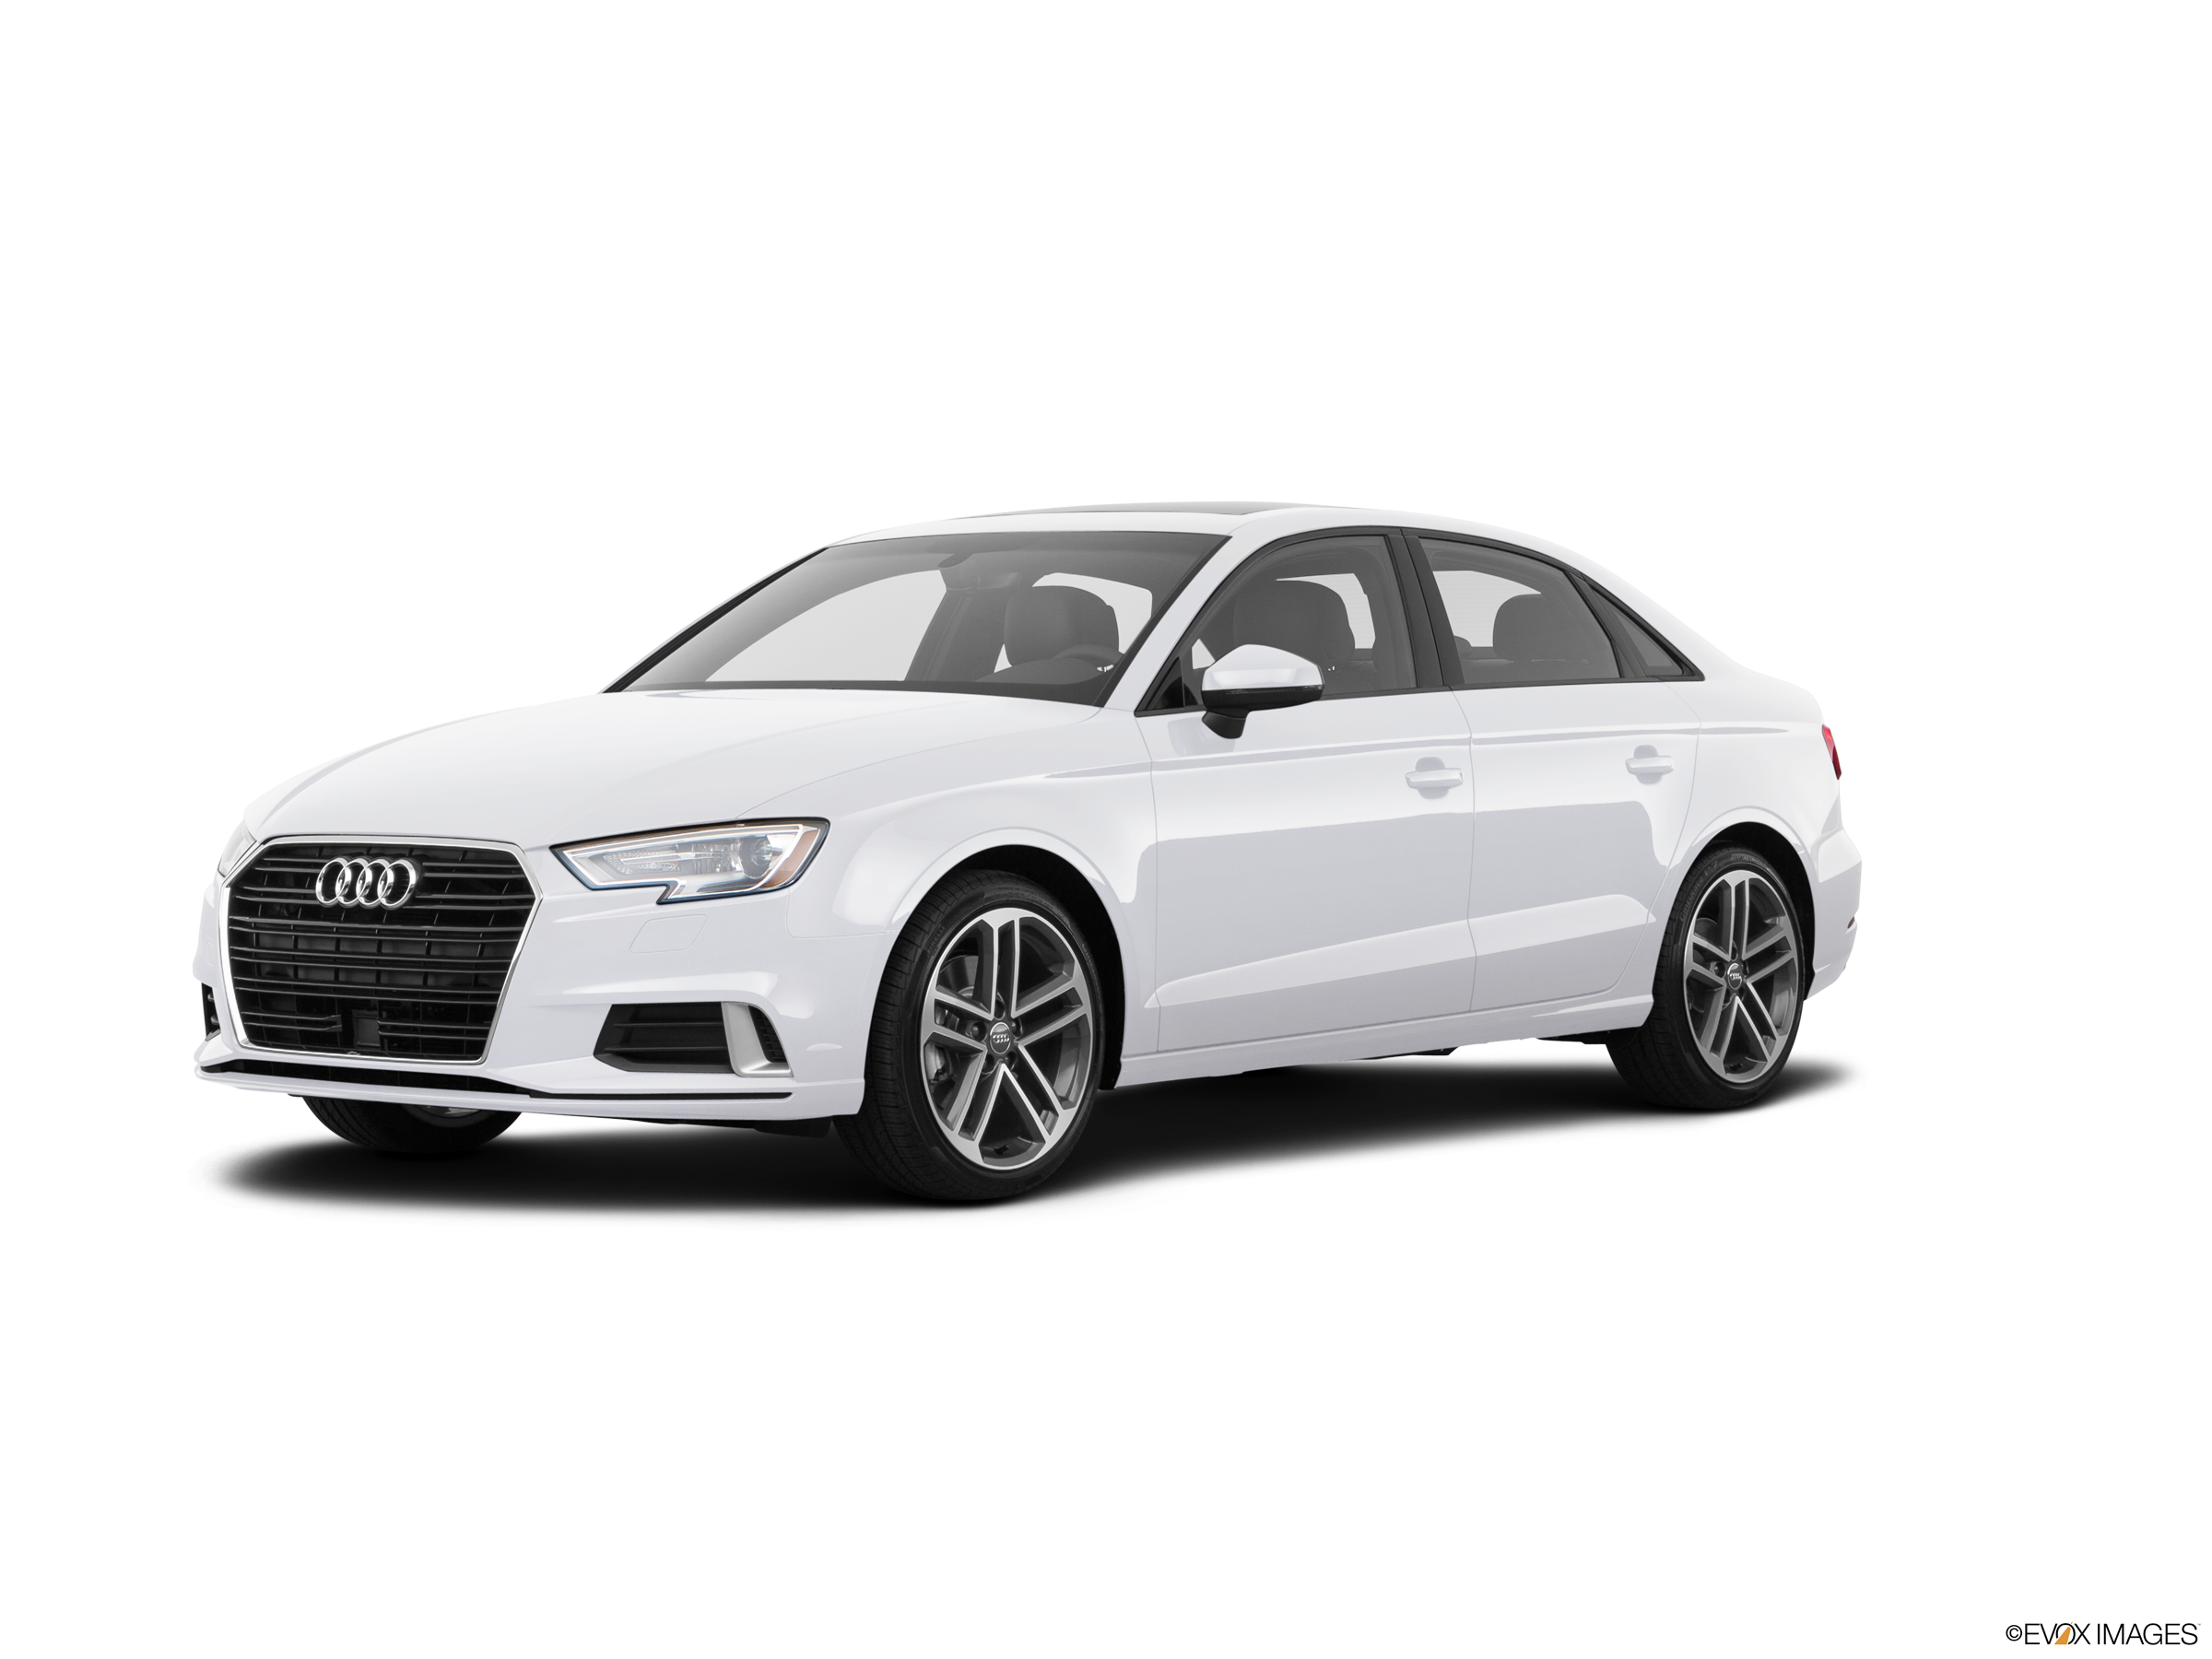 10 Best Luxury Cars Under $35,000 - 2018 Audi A3